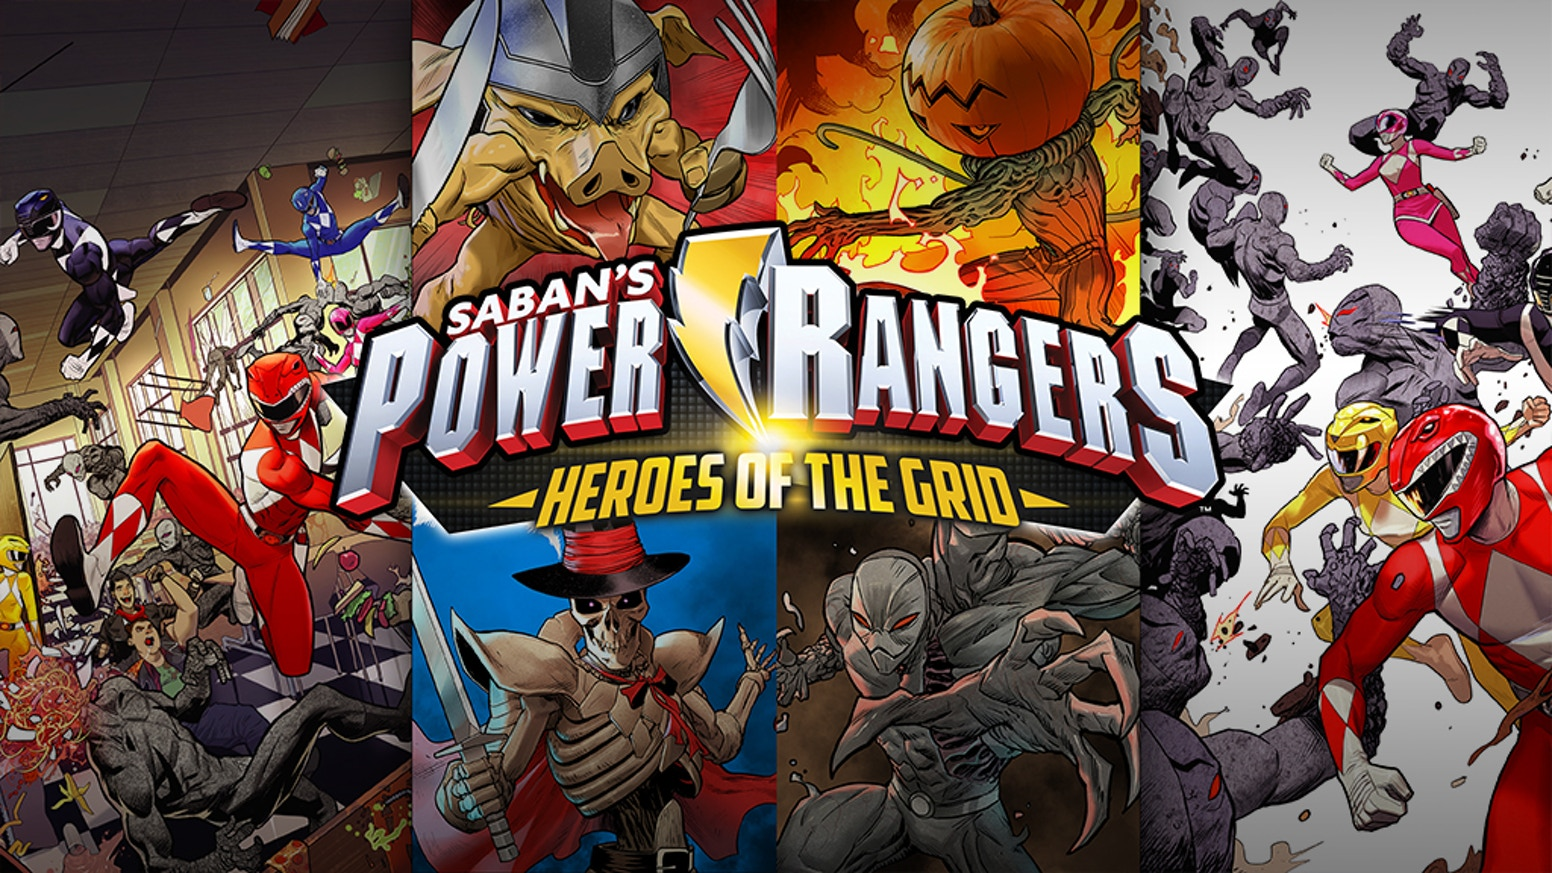 Power Rangers: Heroes of the Grid is a co-operative board game for 2-5 players.